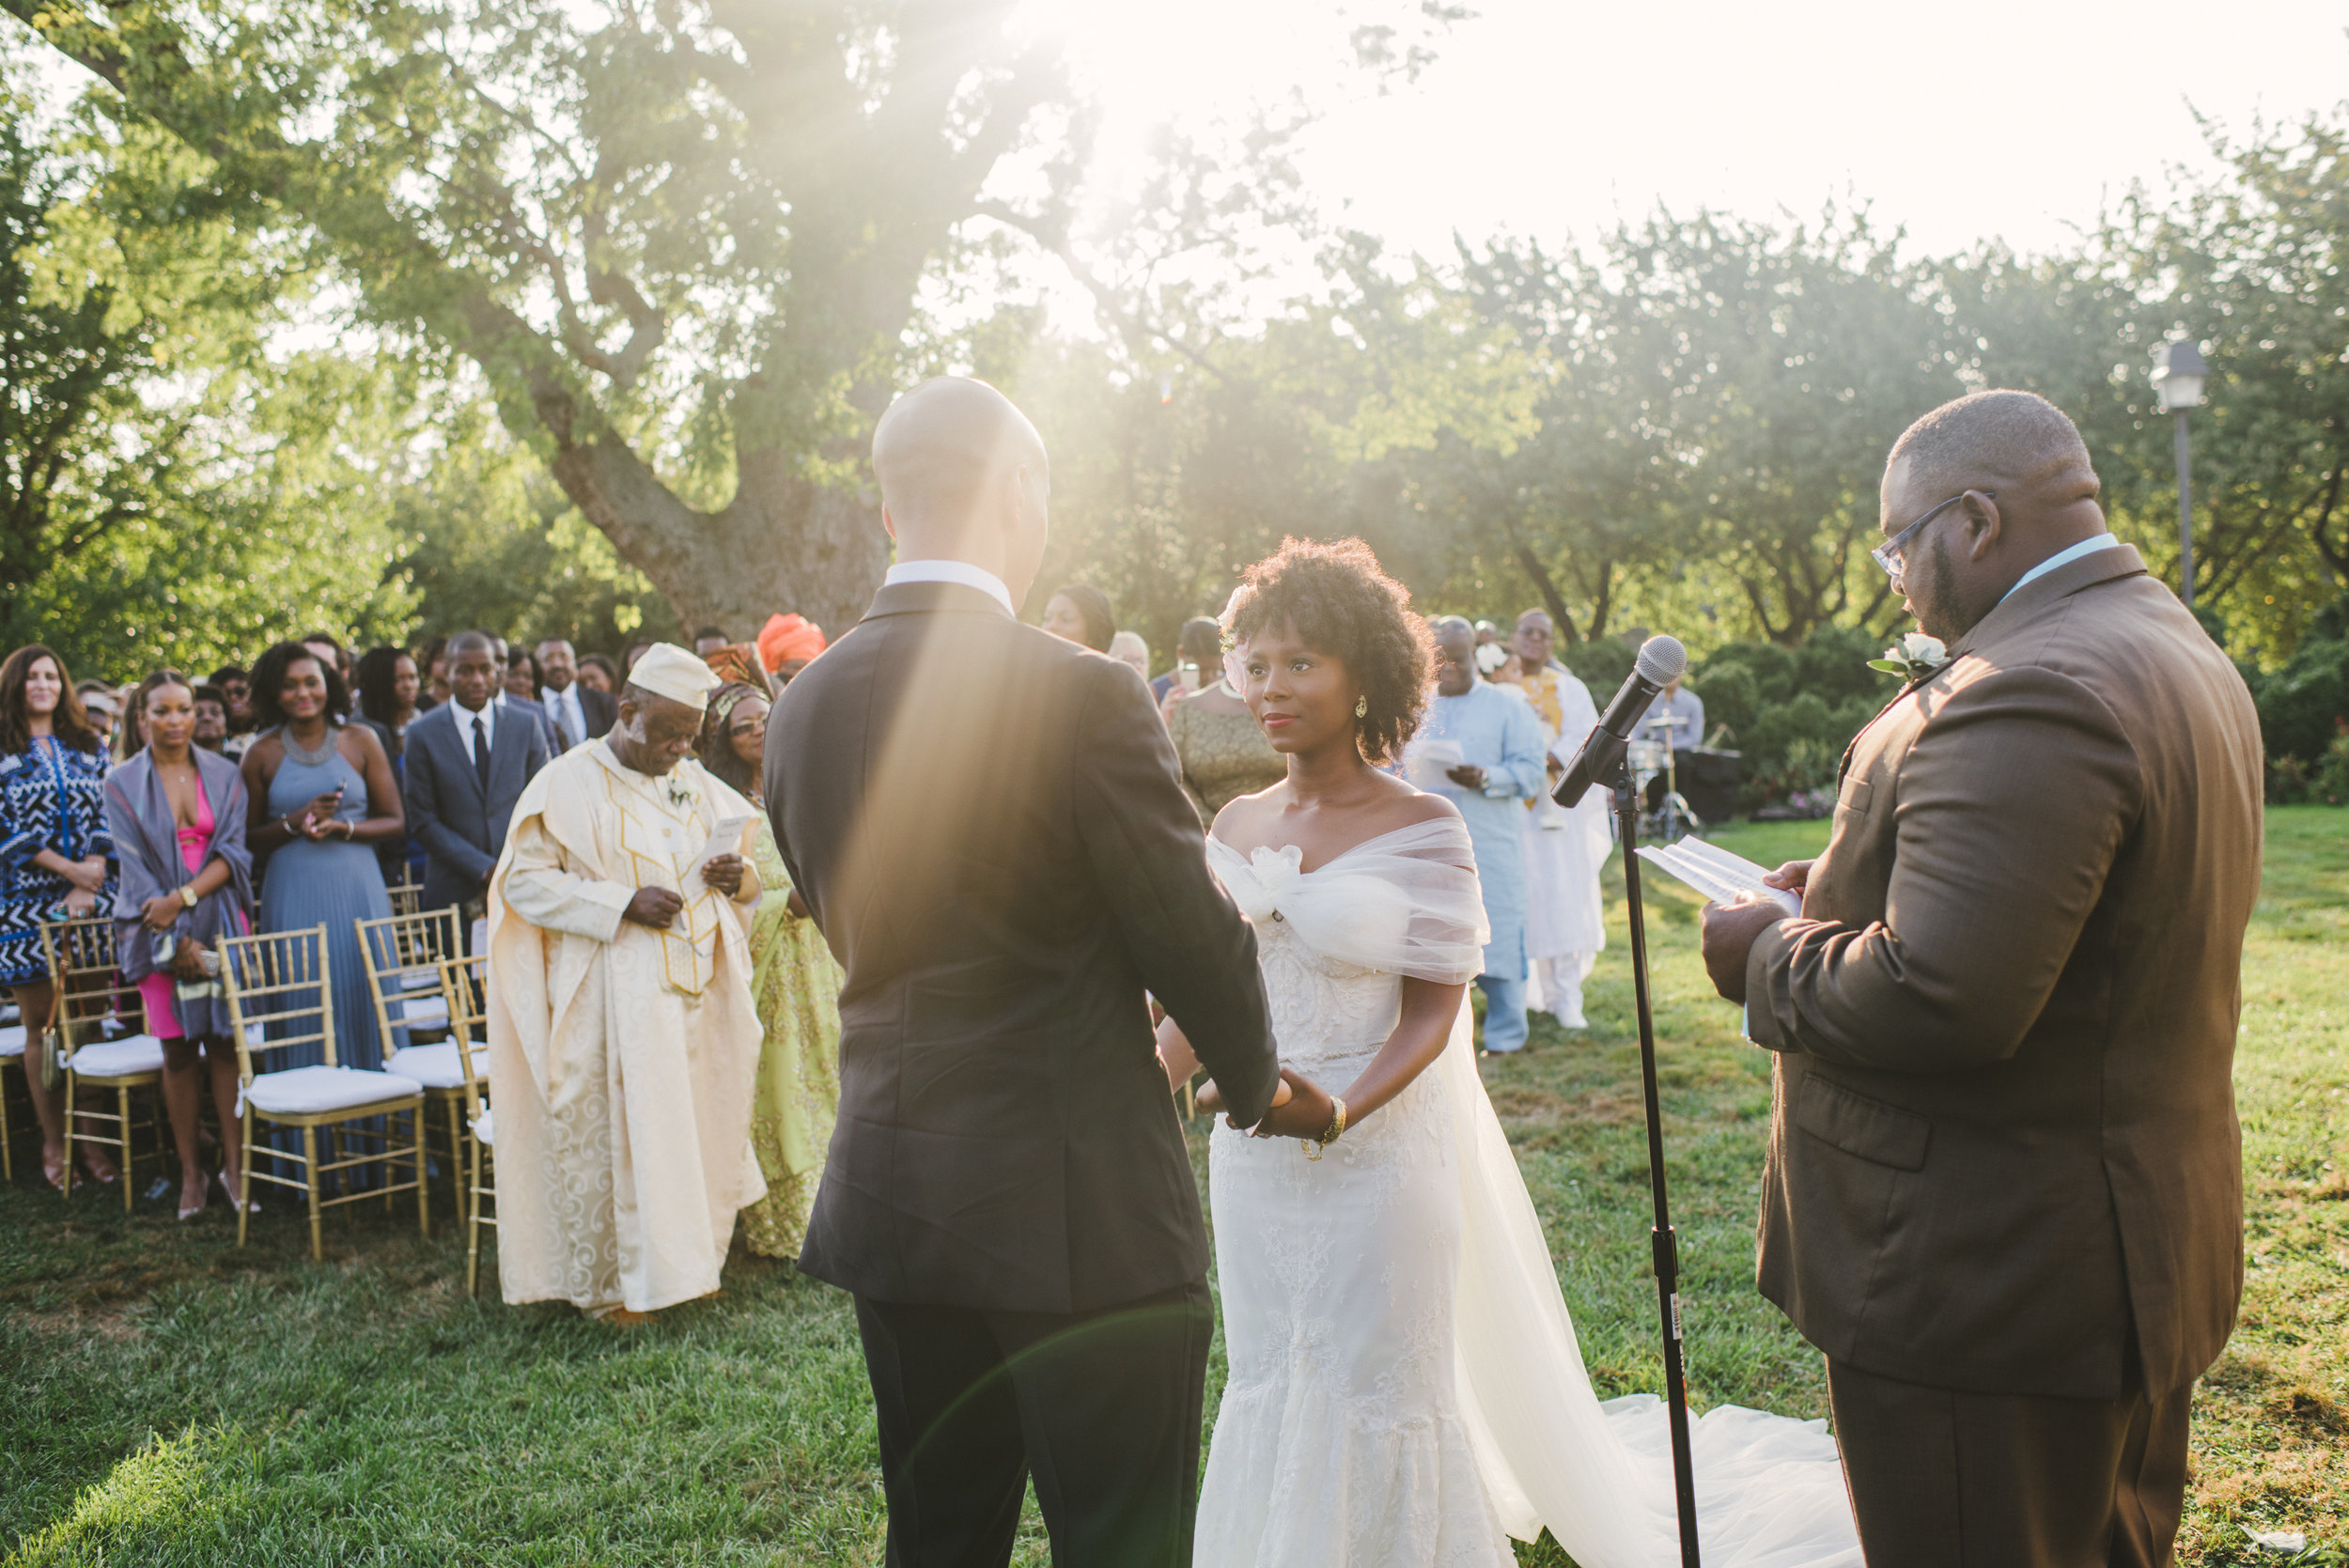 GLENVIEW MANSION WEDDING - INTIMATE WEDDING PHOTOGRAPHER - TWOTWENTY by CHI-CHI AGBIM-234.jpg